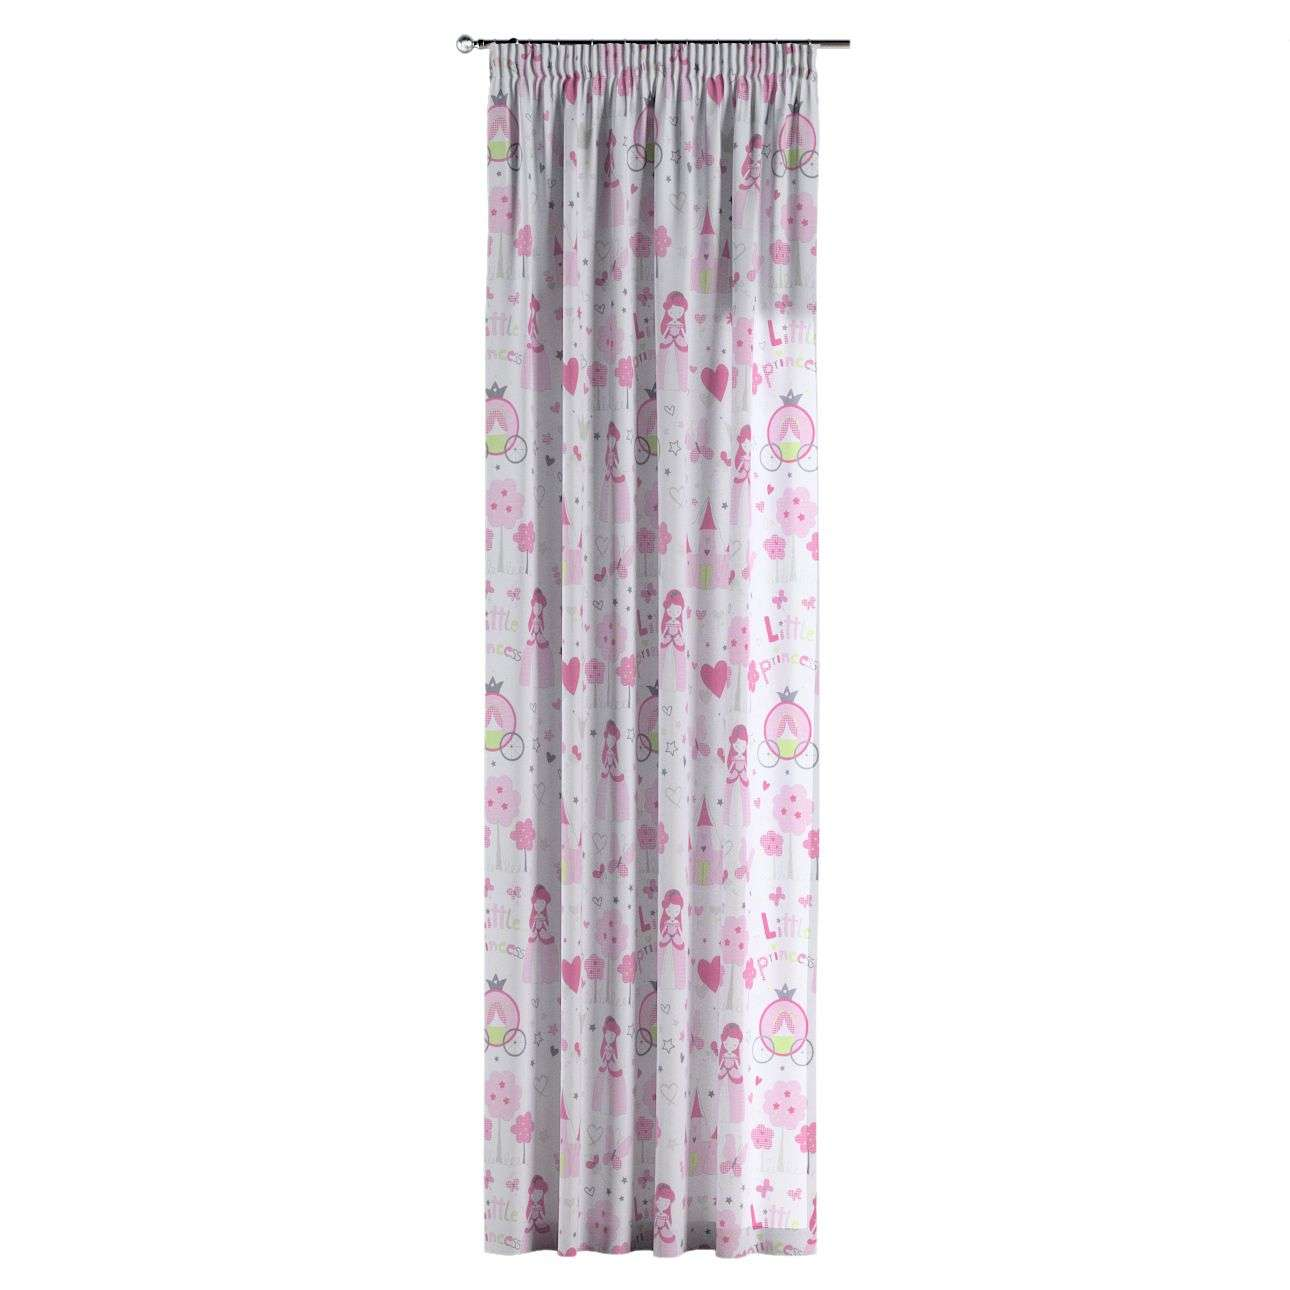 Pencil pleat curtains 130 x 260 cm (51 x 102 inch) in collection Little World, fabric: 141-28